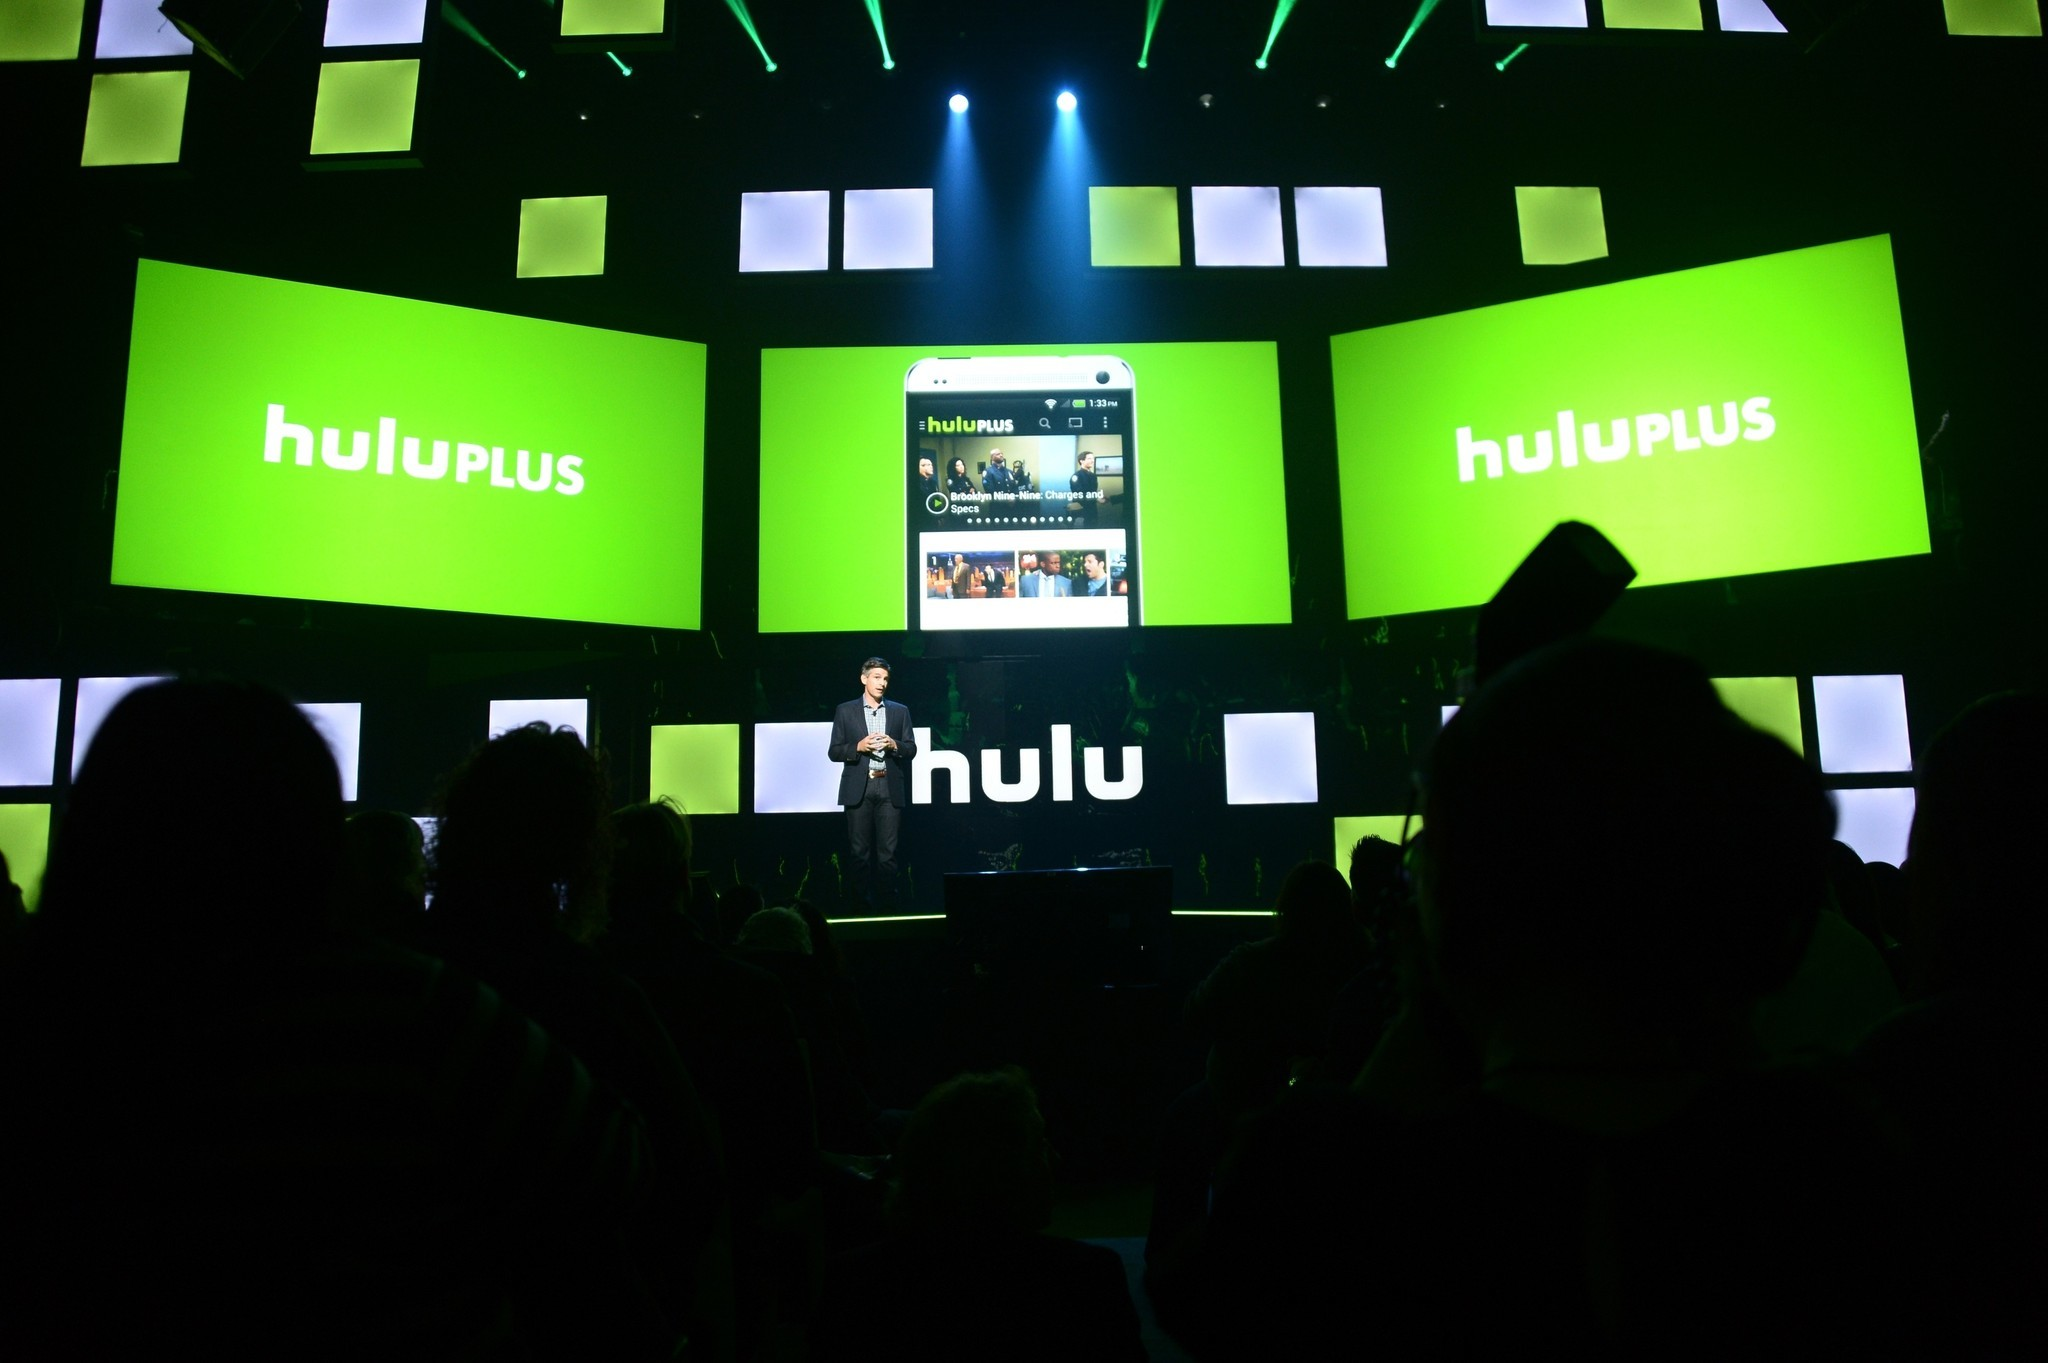 http://www.trbimg.com/img-55899c7b/turbine/la-et-ct-hulu-subscribers-can-soon-access-showtime-content-at-an-additional-cost-20150623